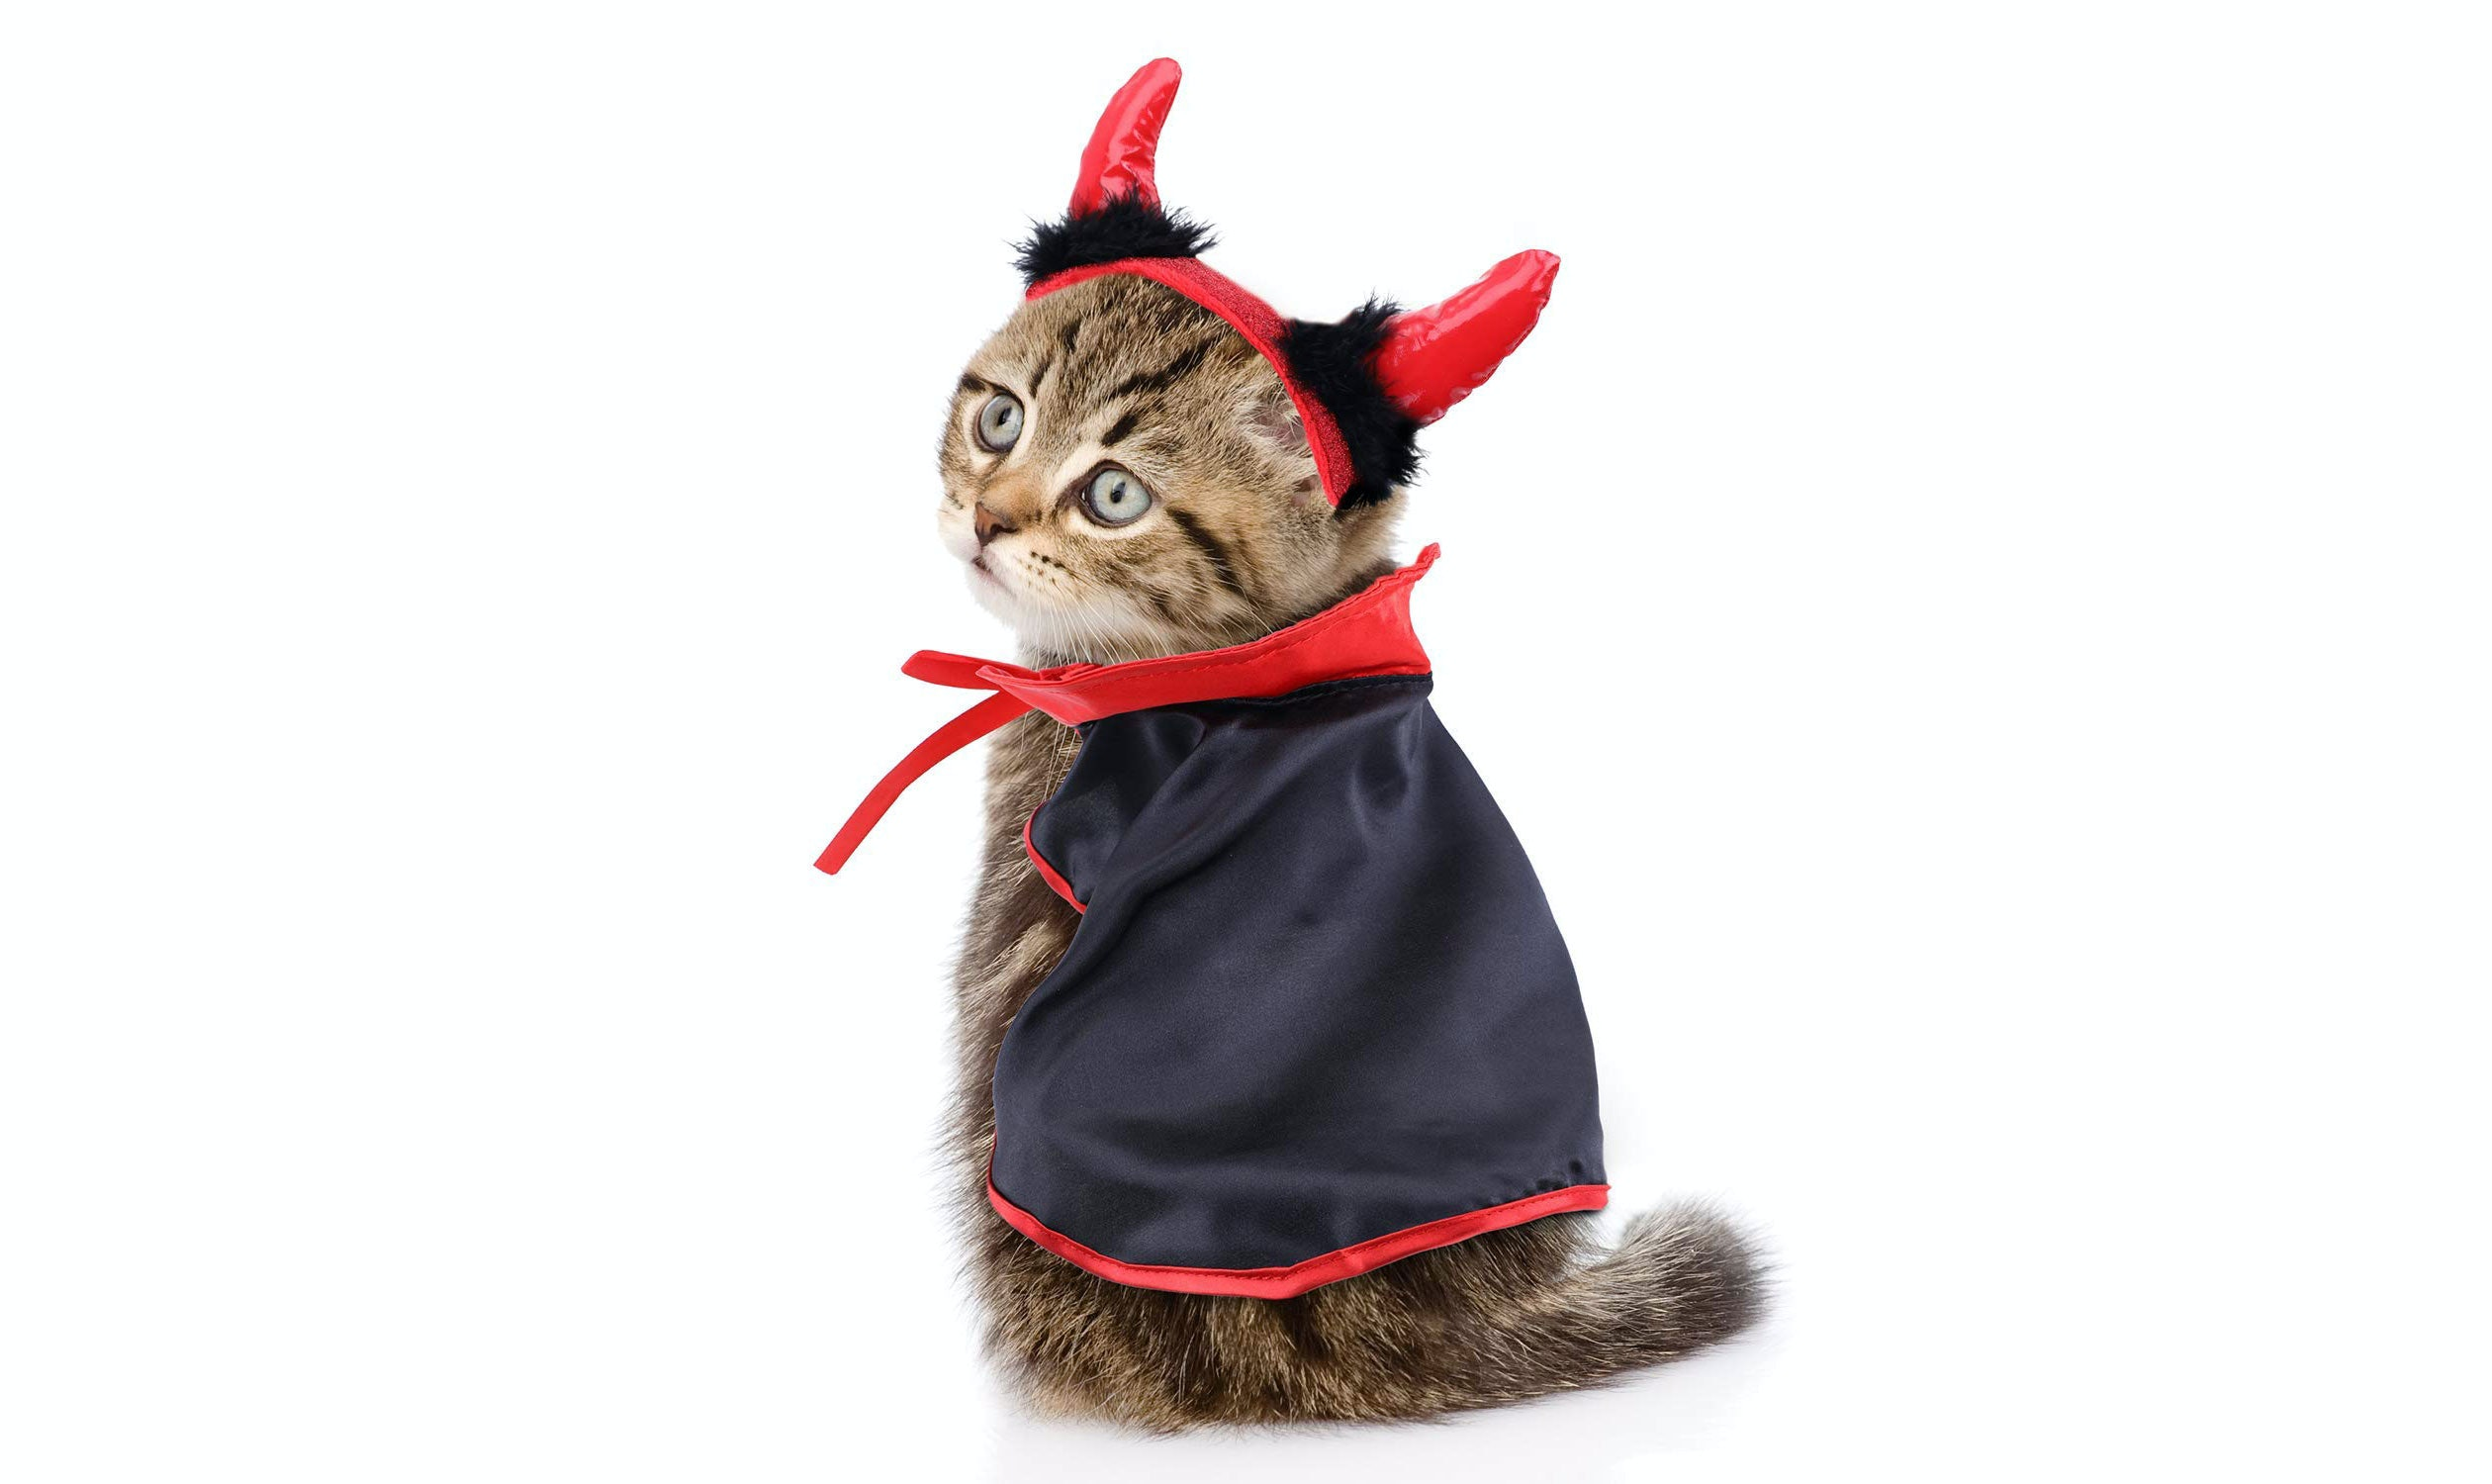 The 9 Best Halloween Costumes For Cats